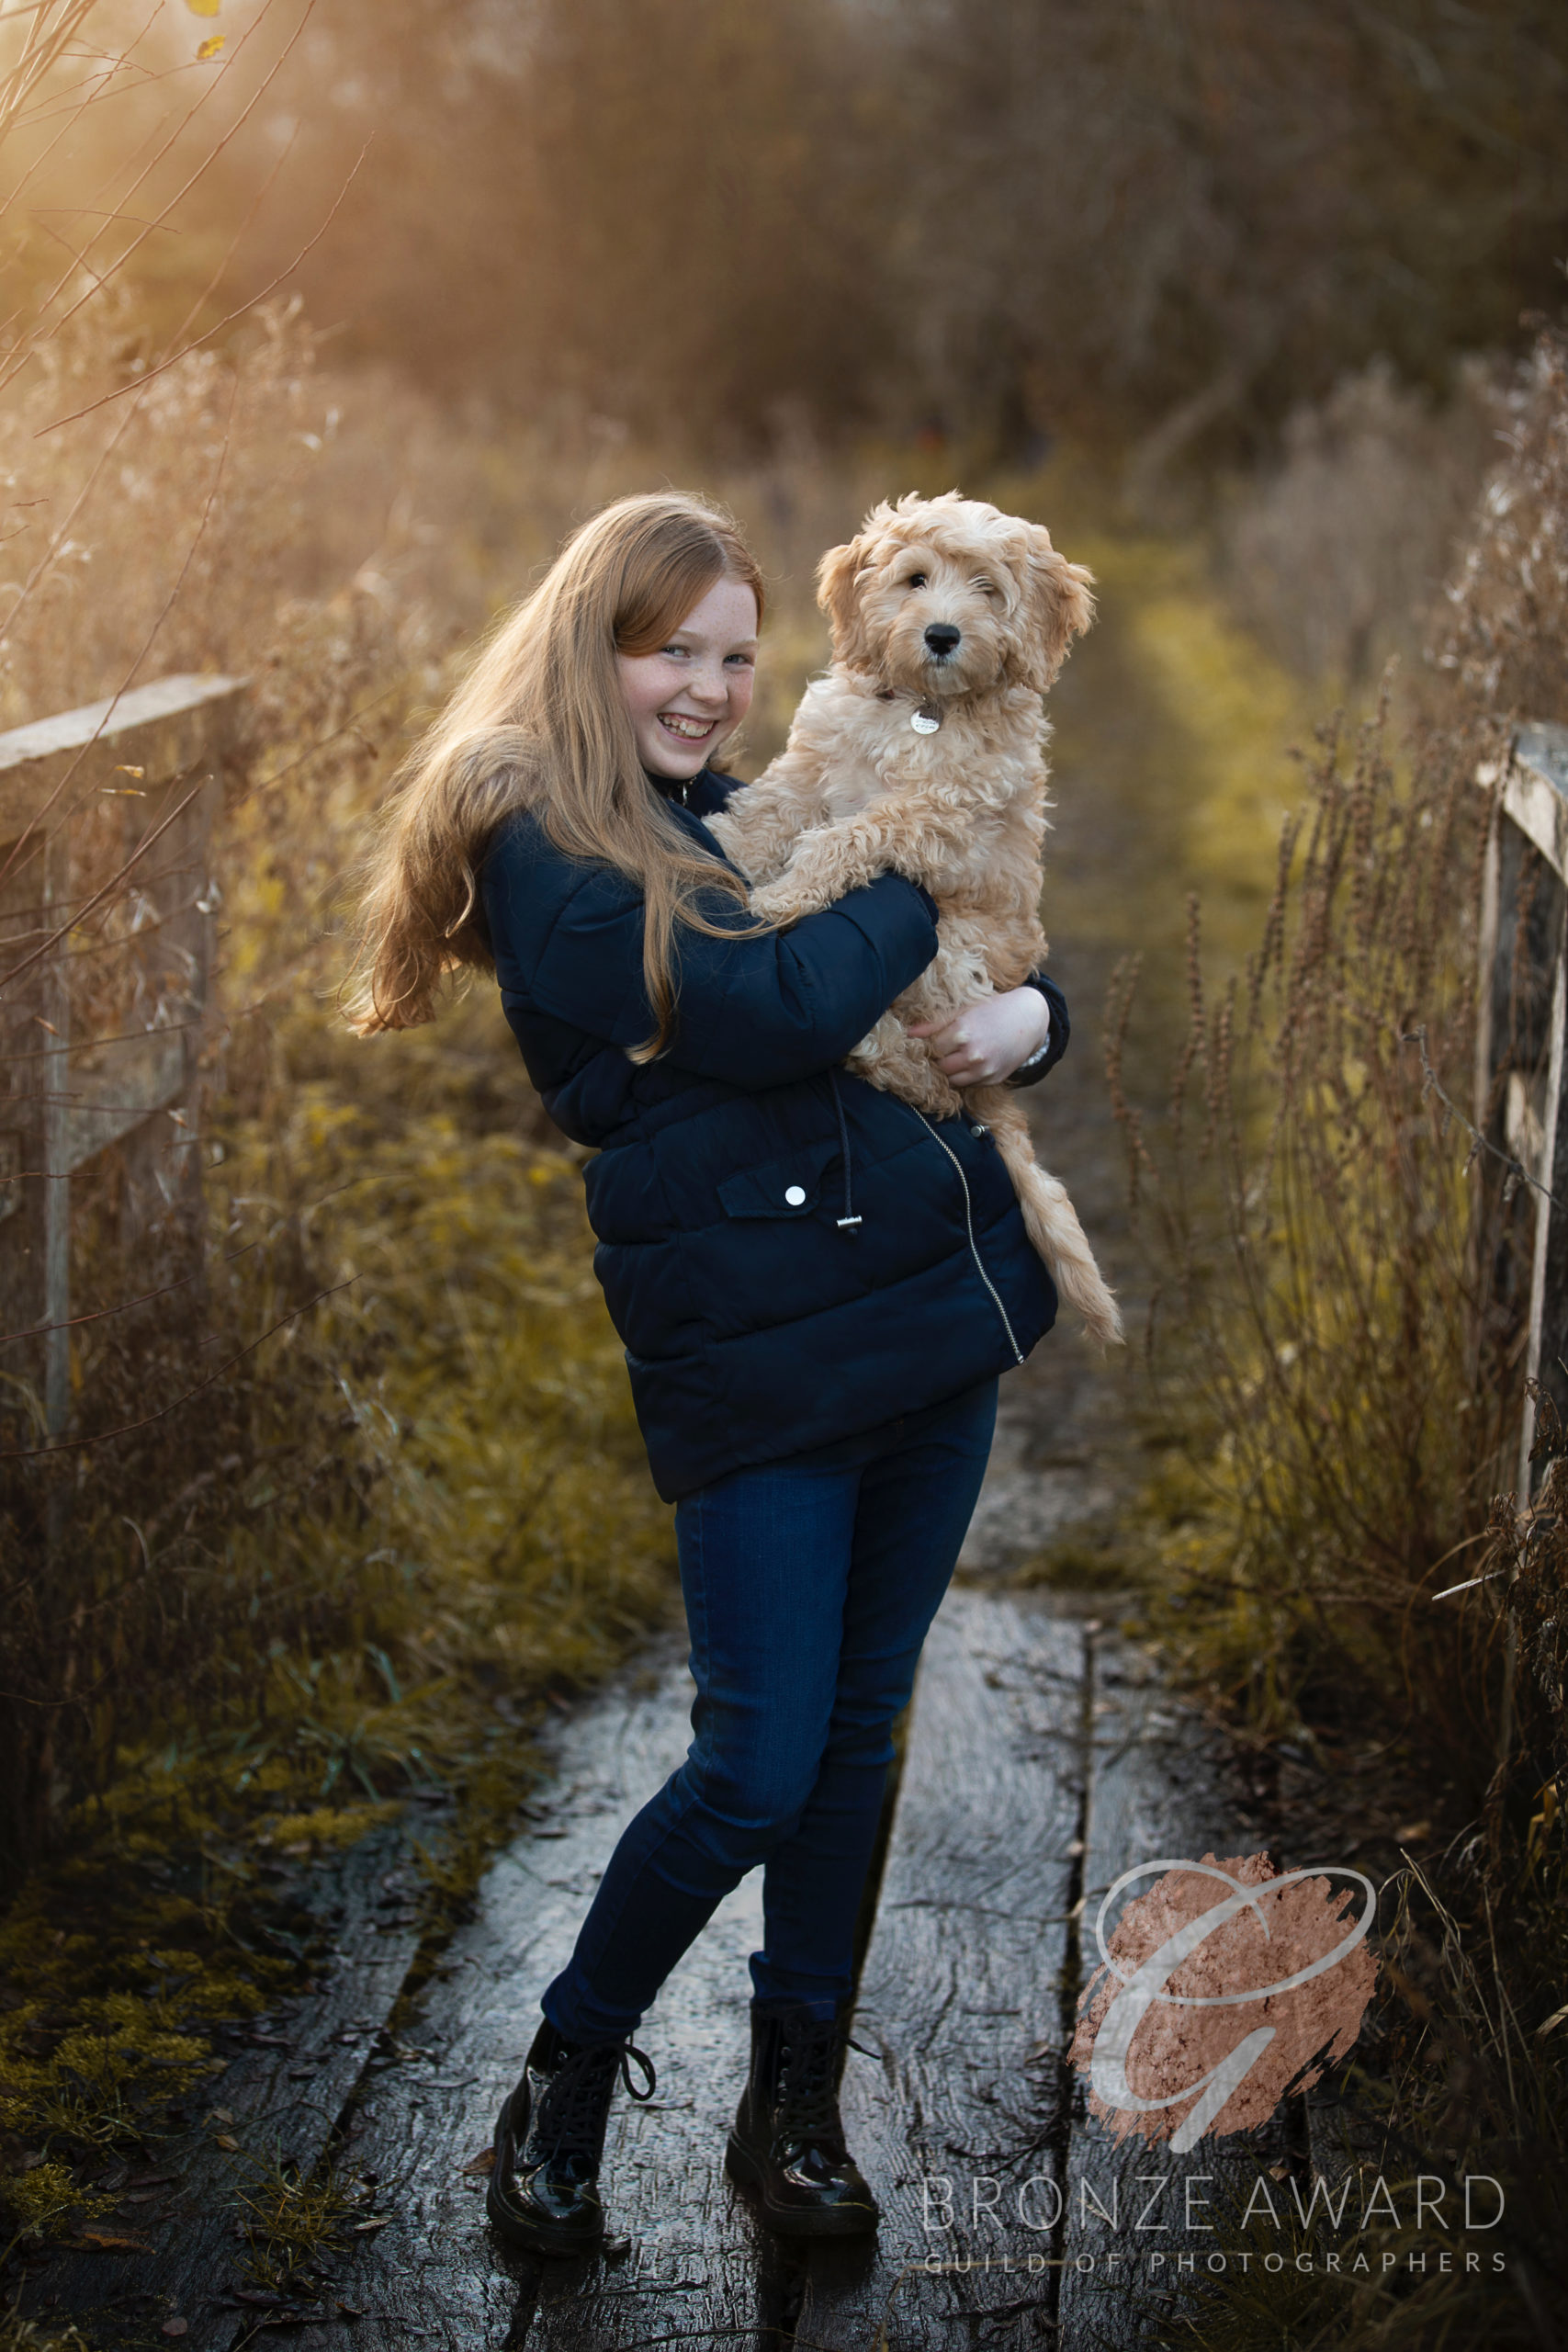 Sarah Dutton Photography was awarded this Bronze award for capturing a beautiful image of a young girl and her pet Dog. The golden hour sunlight is capturing her hair and they are both looking at me with a beautiful smile on the girls face.